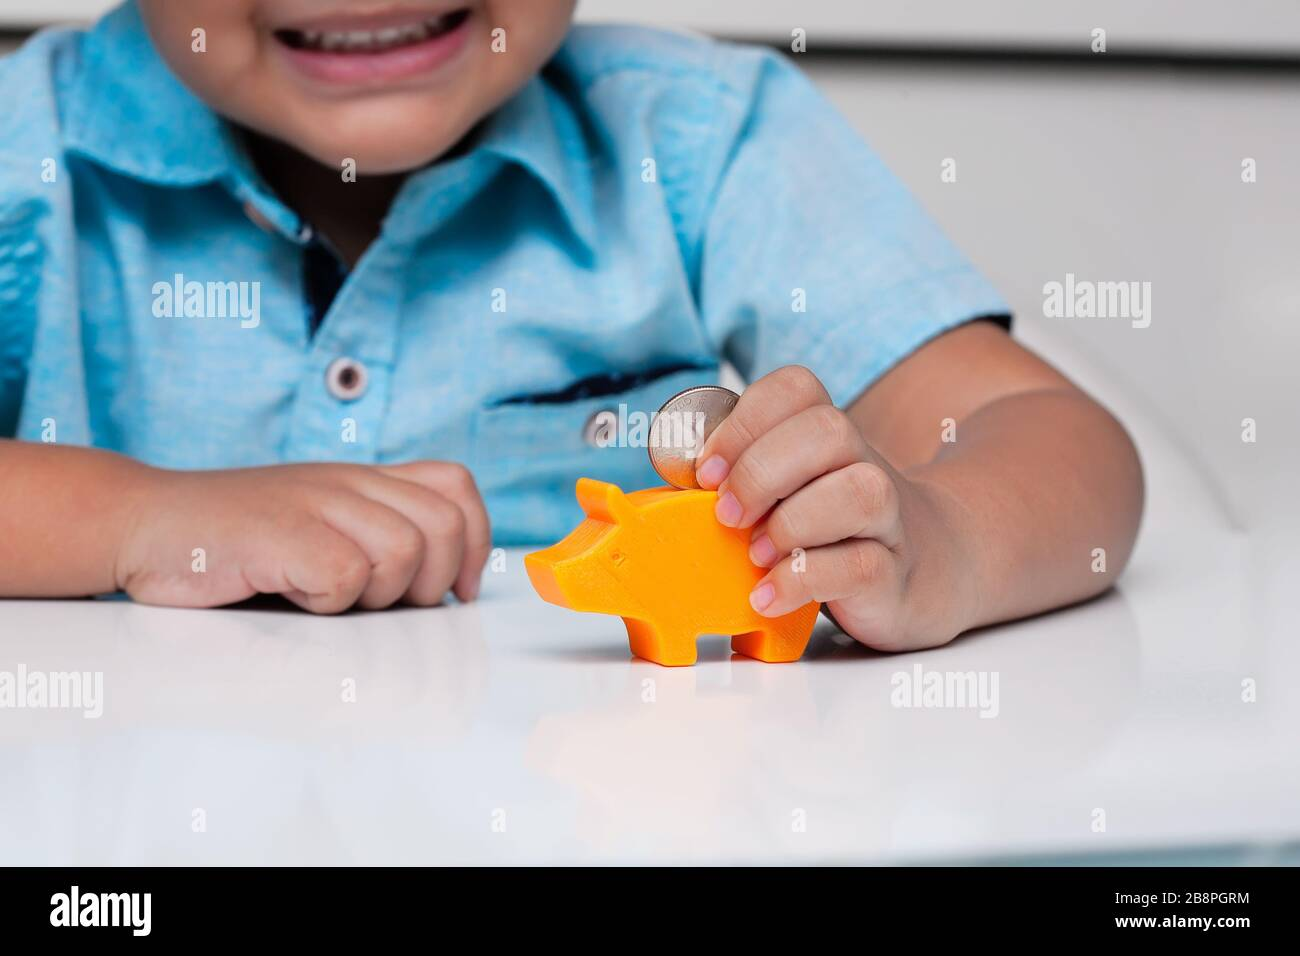 A young boy demonstrating fine motor skills by using a pincer grasp to hold a coin, before putting it into a small piggy bank slot. Stock Photo